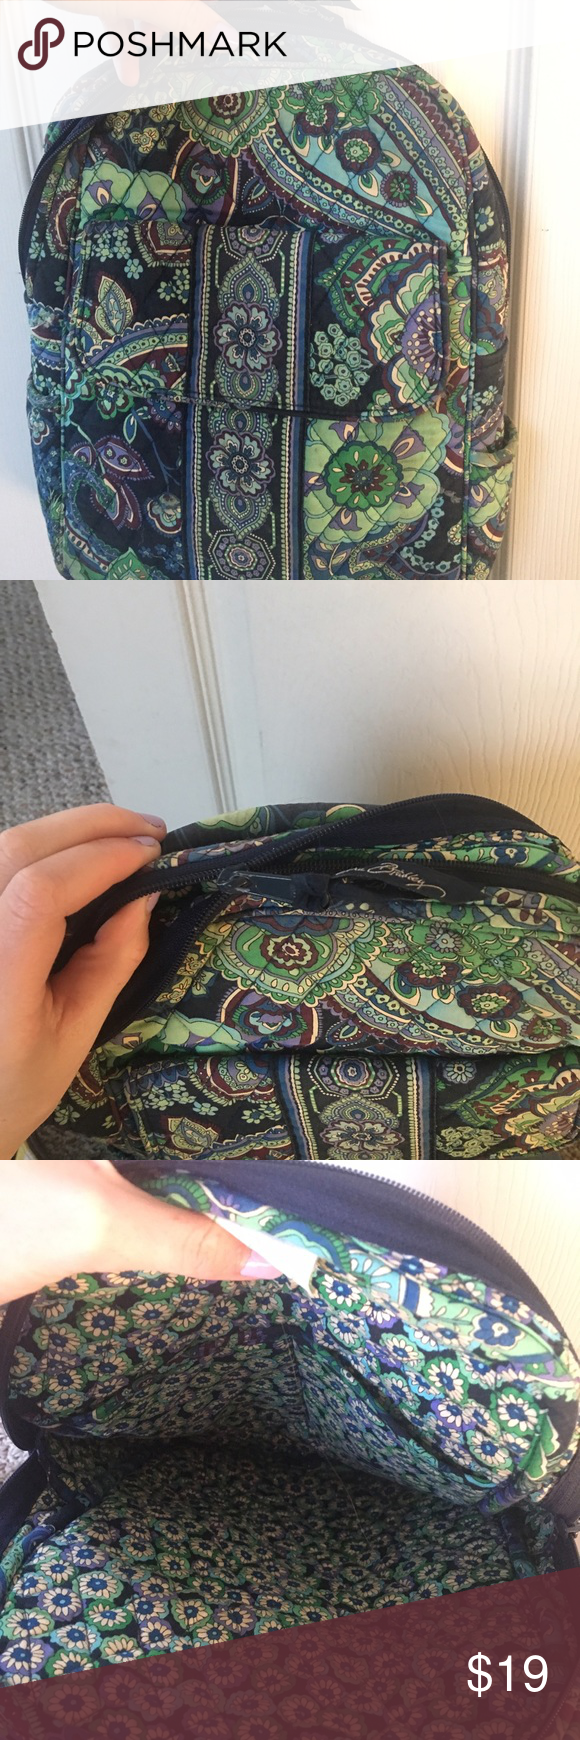 Vera Bradley bag Has signs of wear faded a little bit and the zipper is broke but can be easily fixed. Very nice bag. Vera Bradley Bags